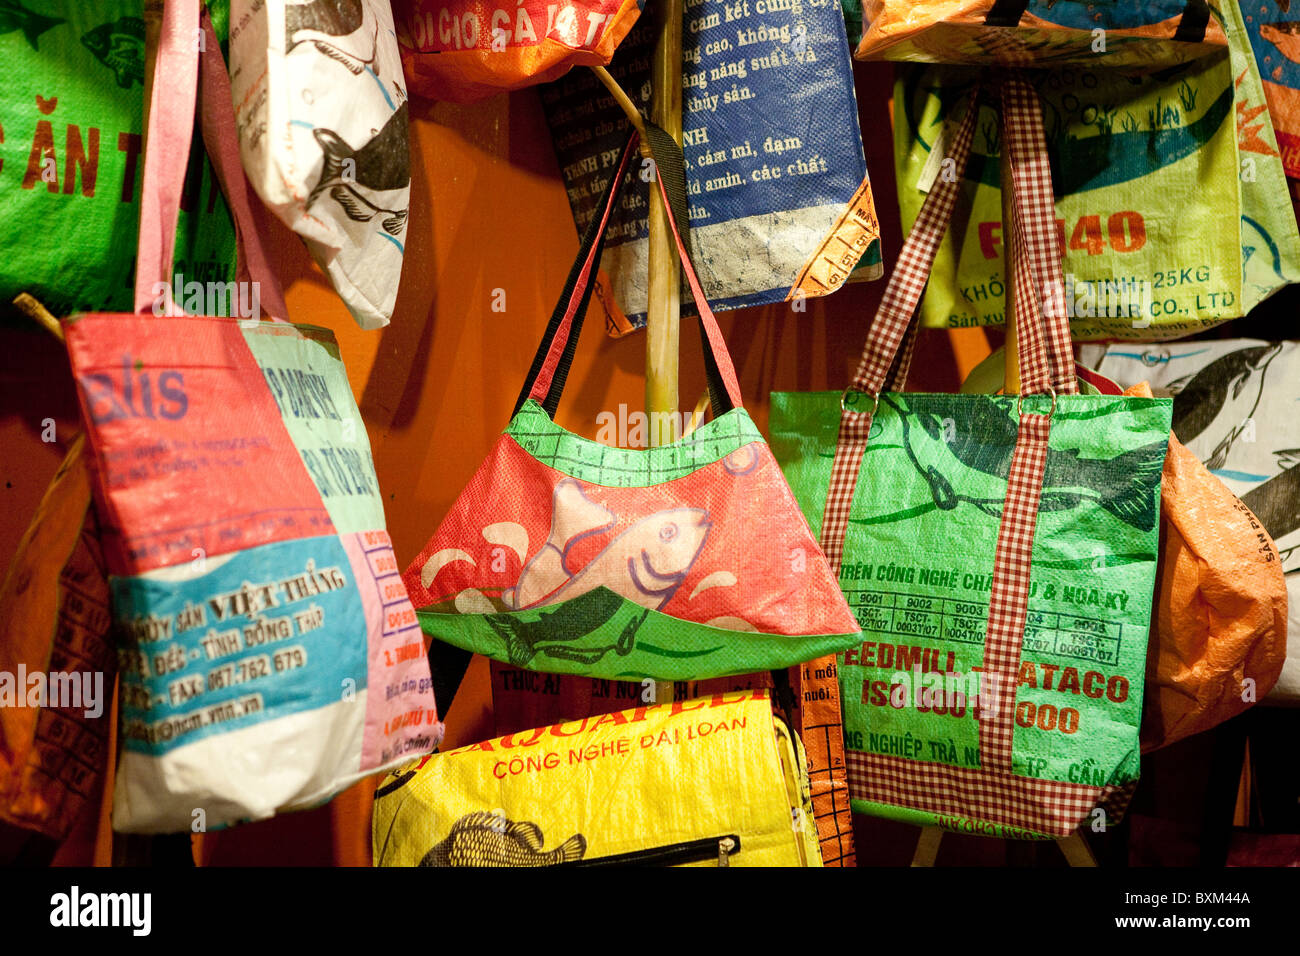 Recycled rice bag purse - Handbags Made Out Of Rice Bags At The Angkor Night Market In Siem Reap